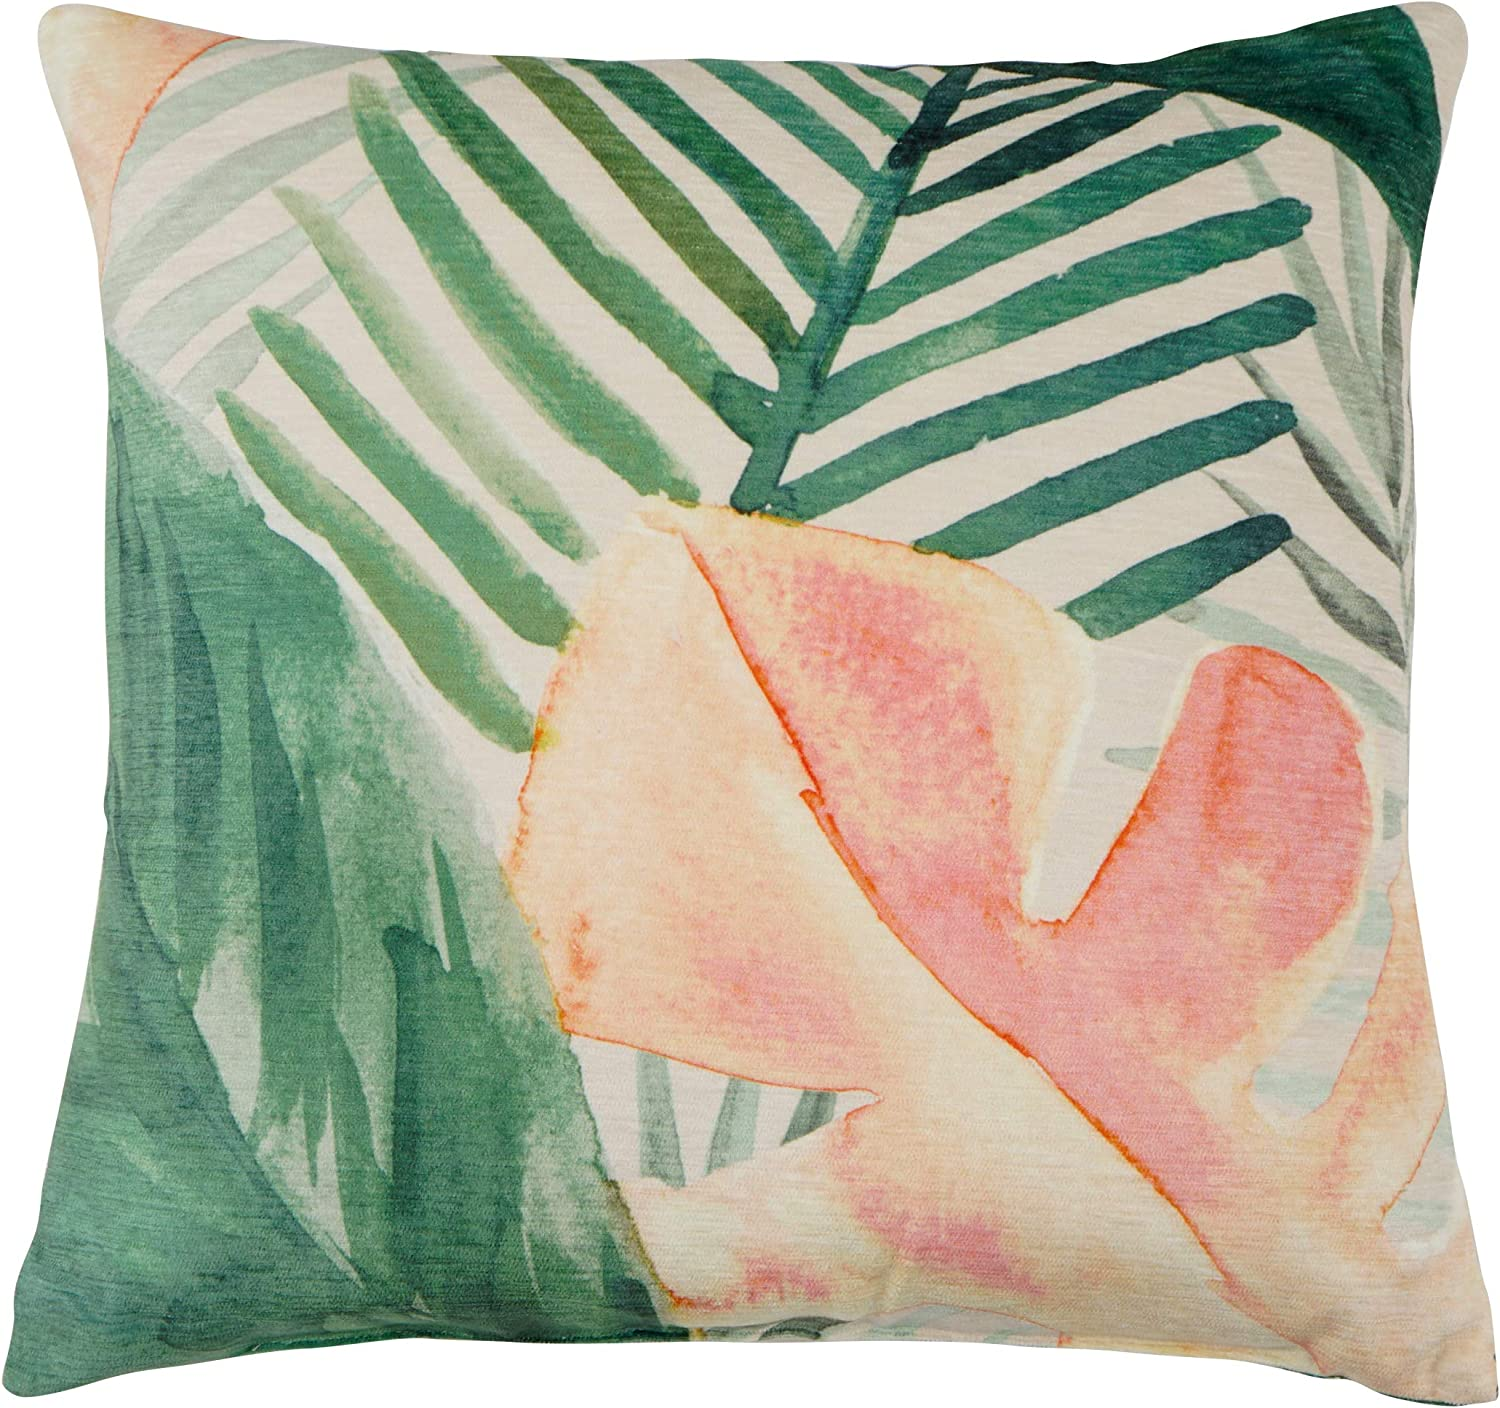 Artisan Home Palm Leaves Decorative Throw Pillow | Indoor & Outdoor Decoration | Fade Resistant | Tropical Decor | Size 16